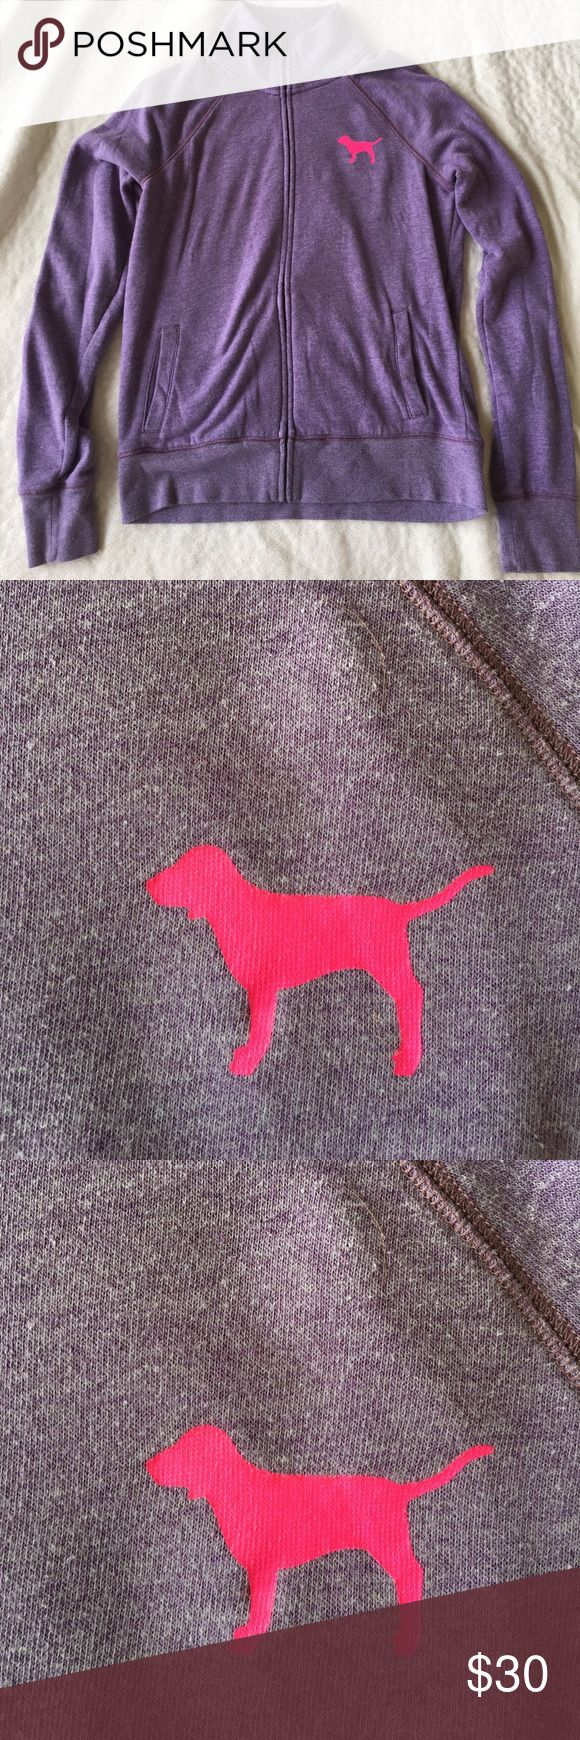 VS PINK Zip Up EUC PINK zip up! Super cute and cozy! Perfect for spring and summer! Smoke free, dog friendly home! PINK Victoria's Secret Tops Sweatshirts & Hoodies